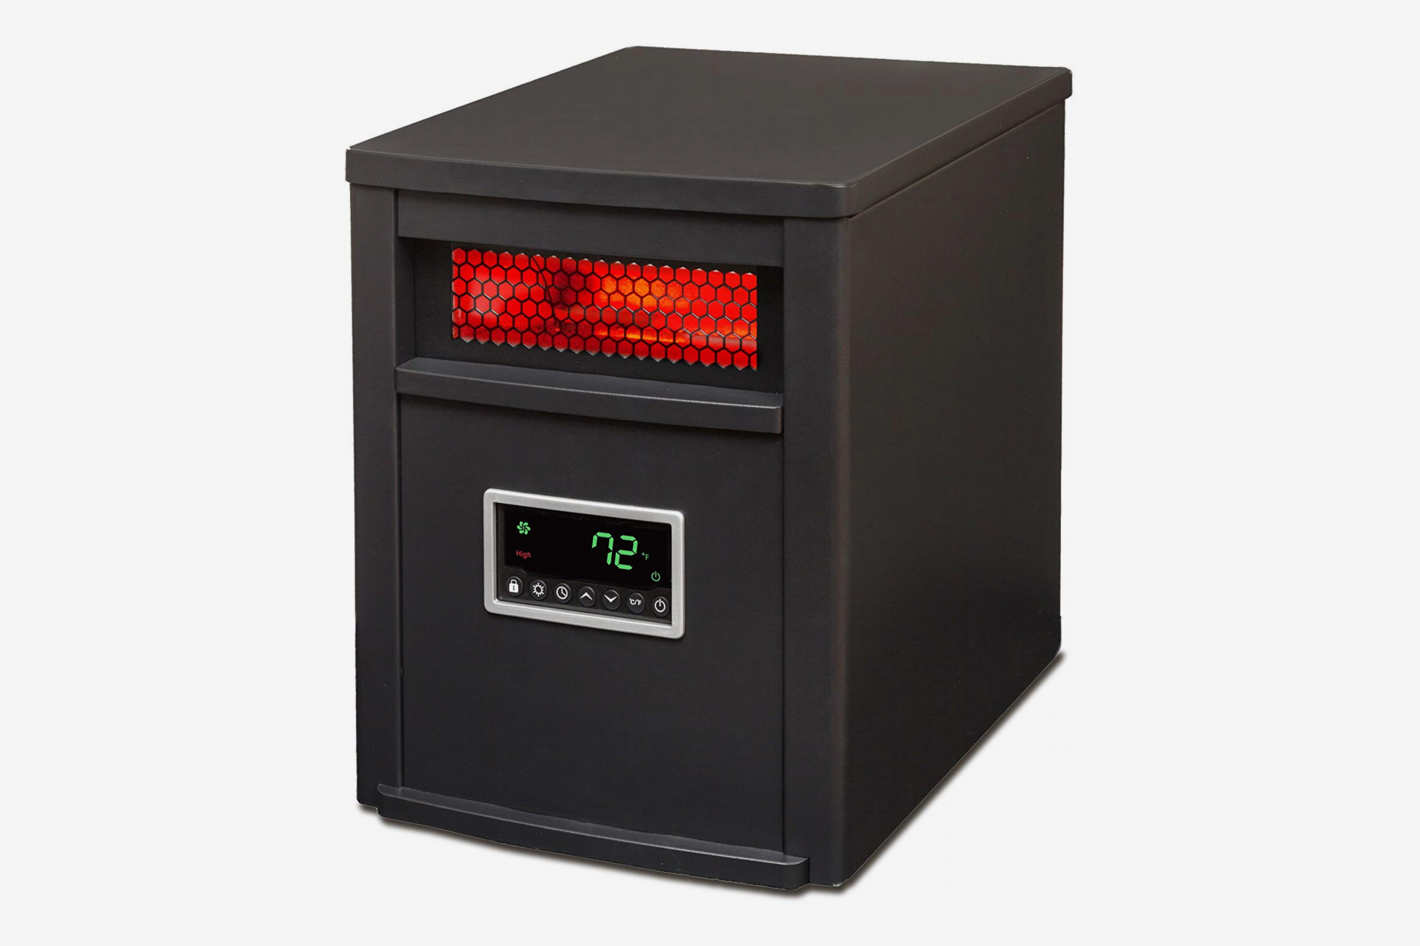 Best Infrared Heaters On Amazon Including Dr Infrared